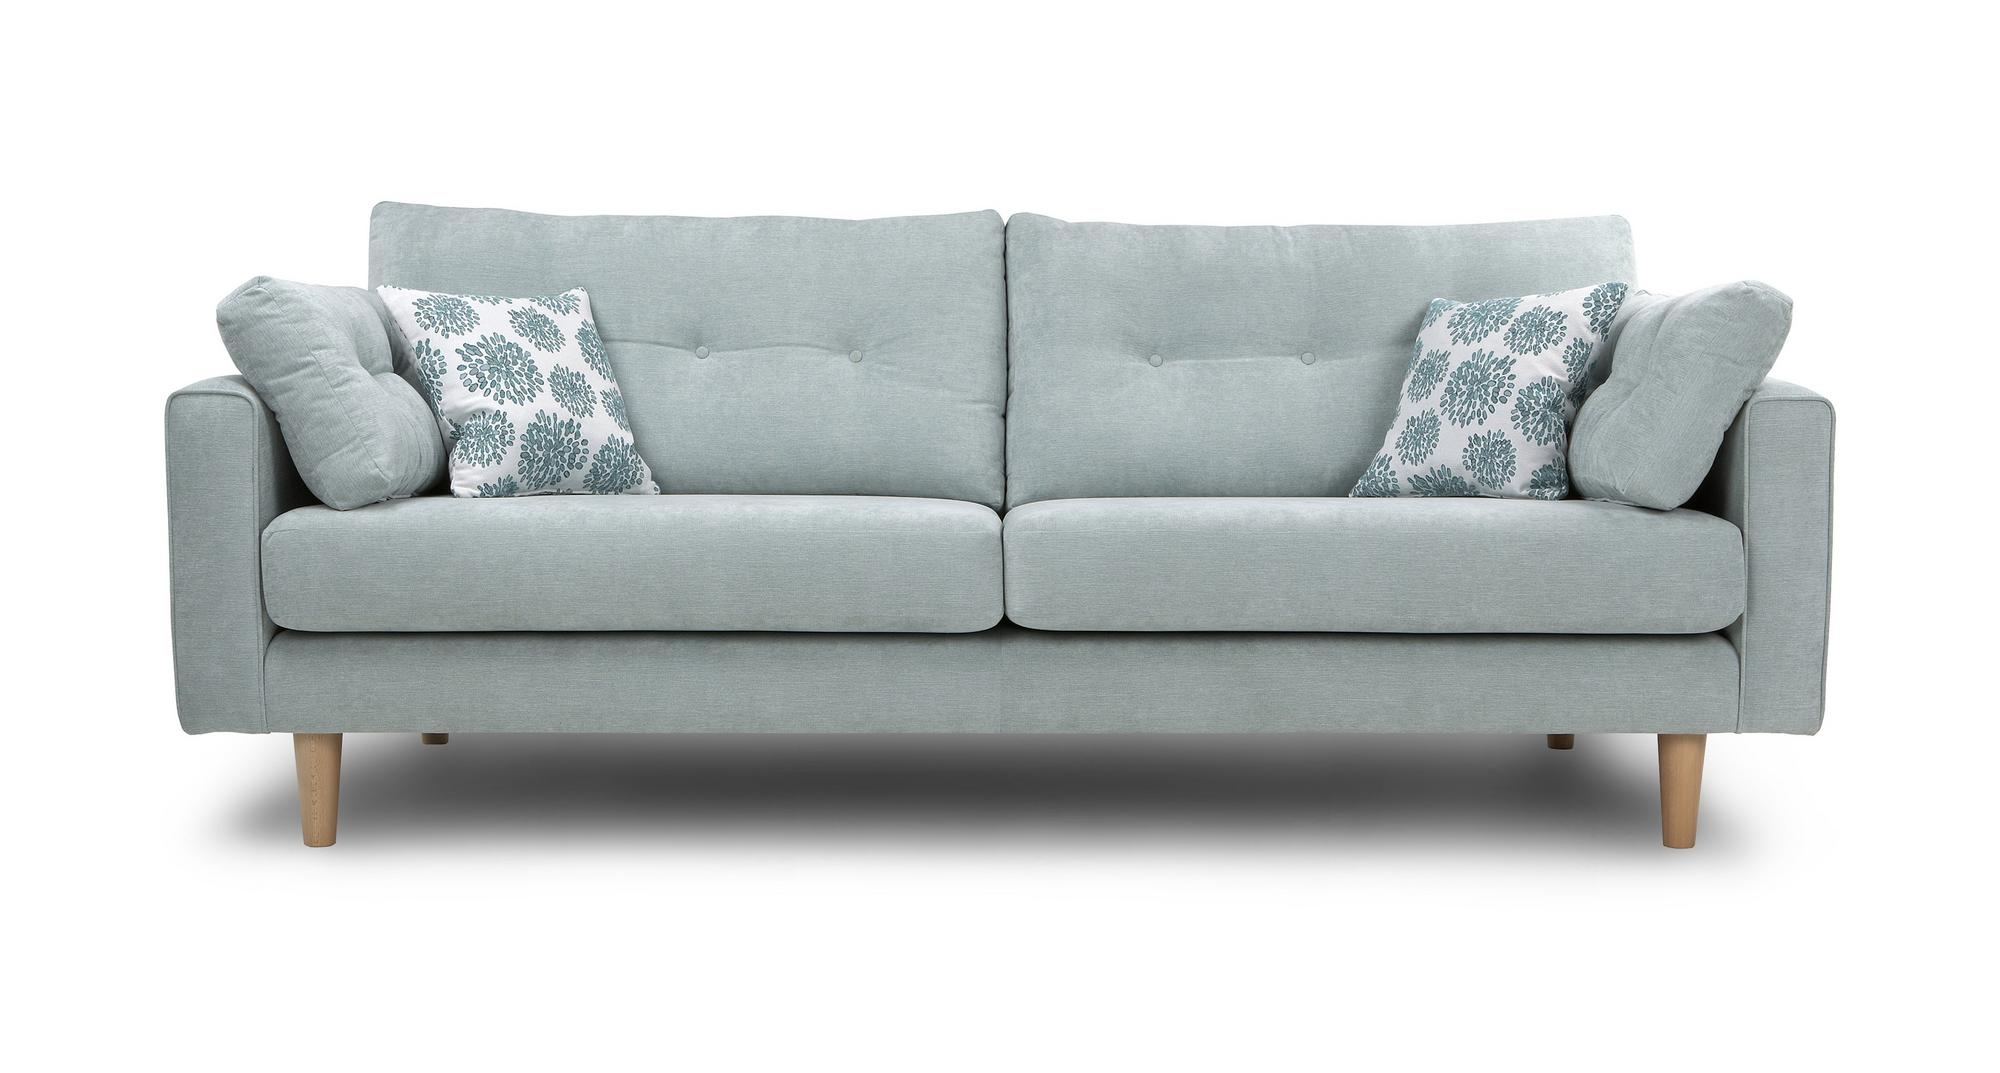 Dfs 2 Seater Sofa Bed Images 3 Chesterfield